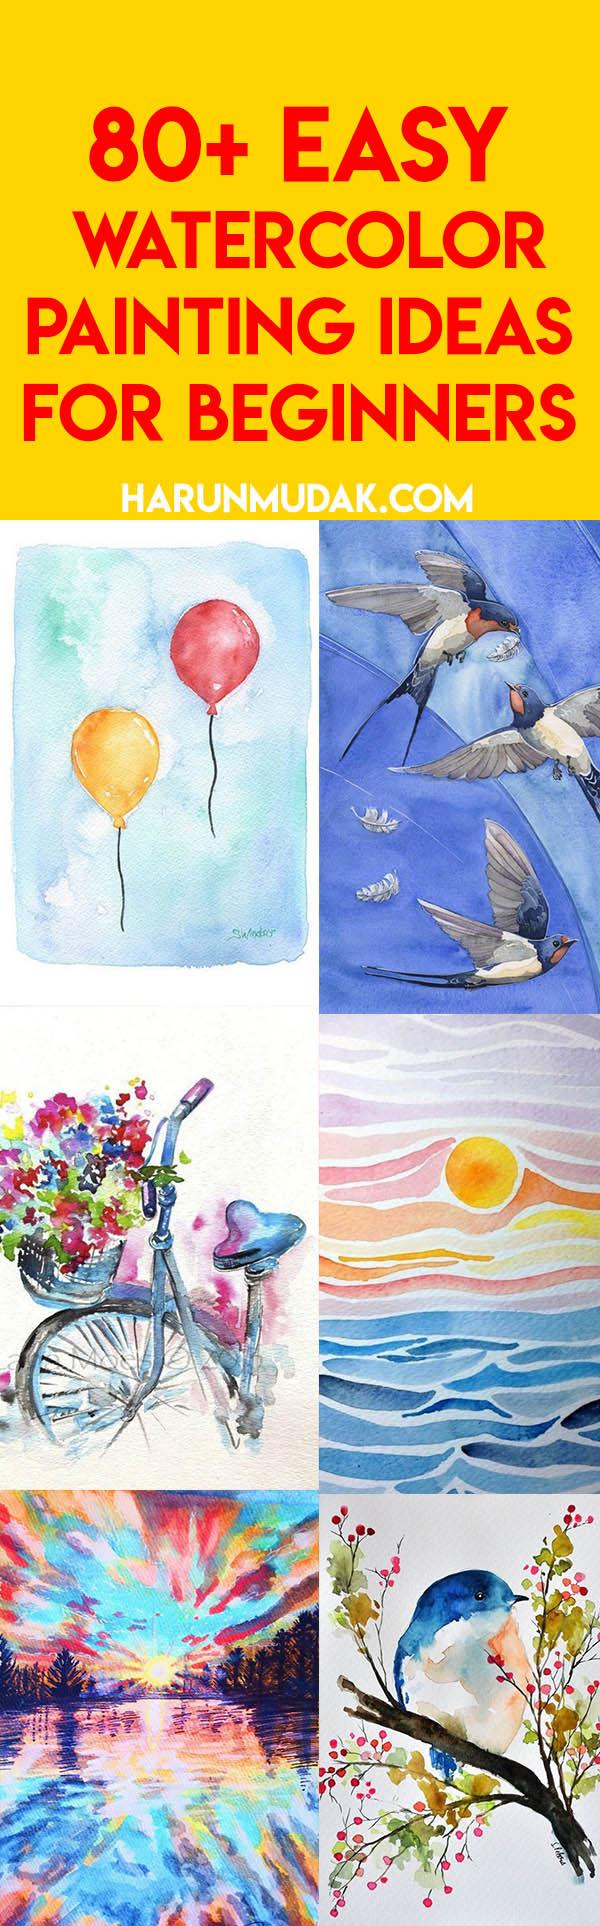 80 Easy Watercolor Painting Ideas For